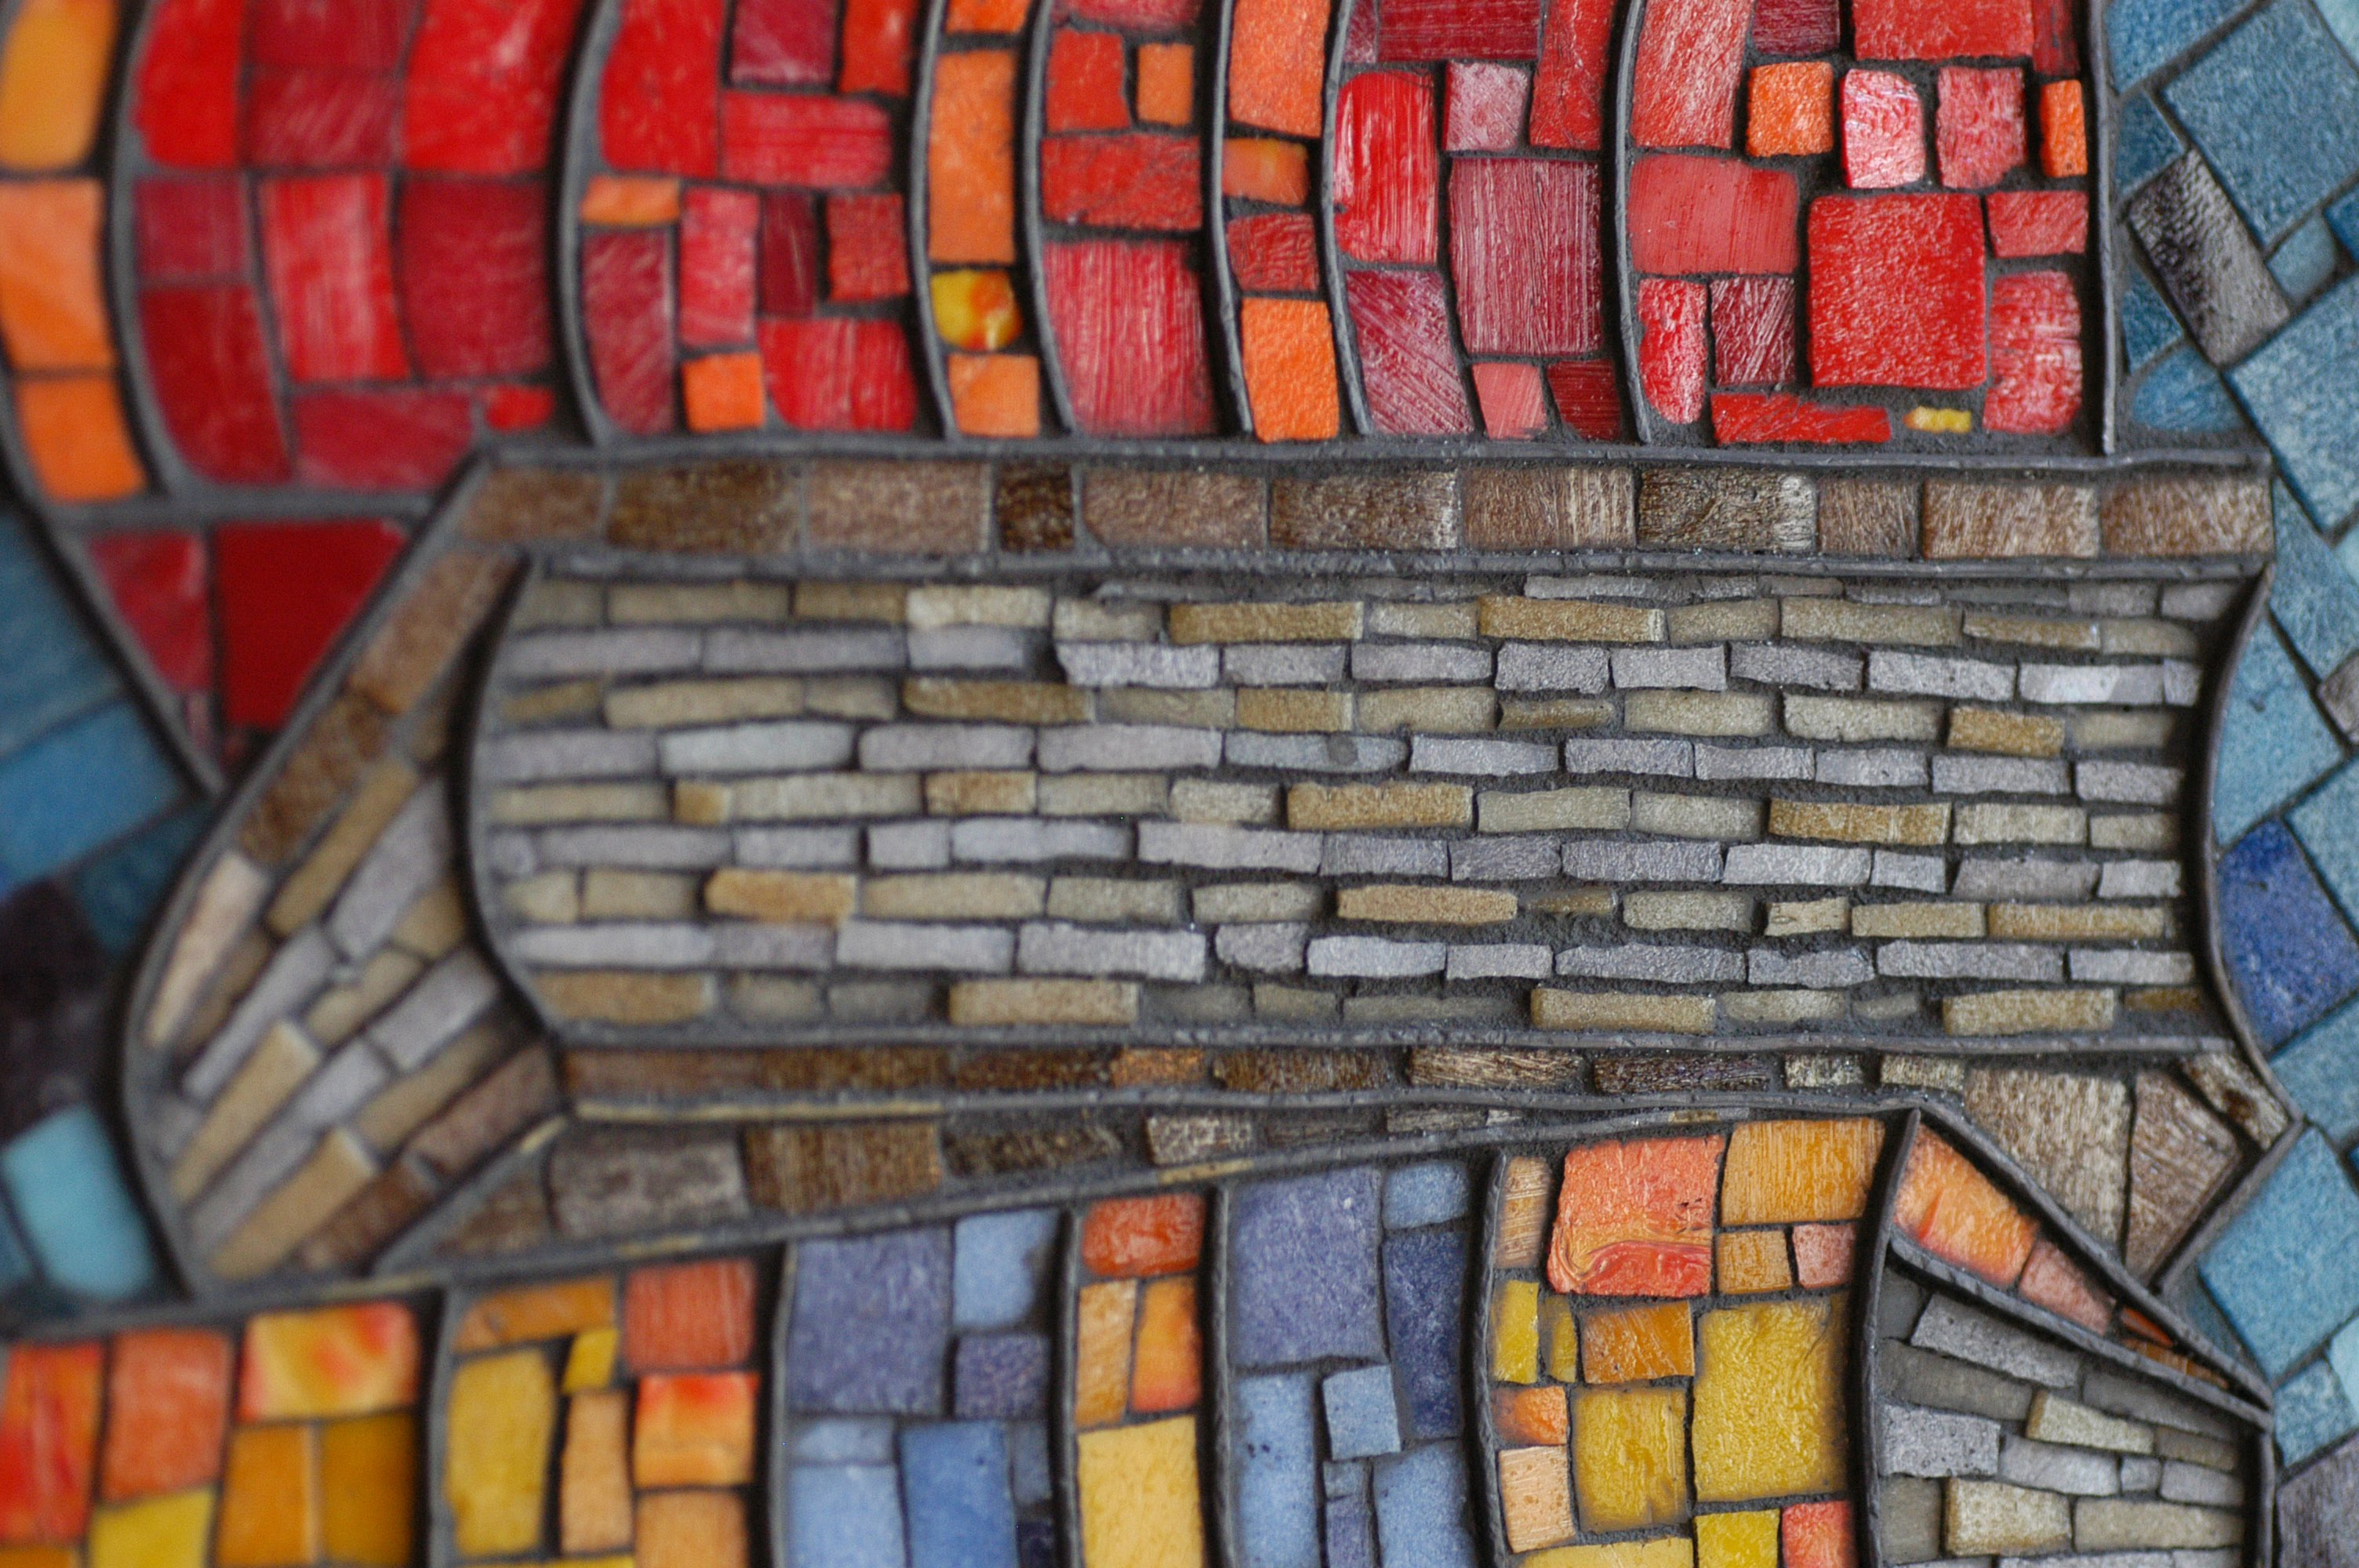 mosaic of book